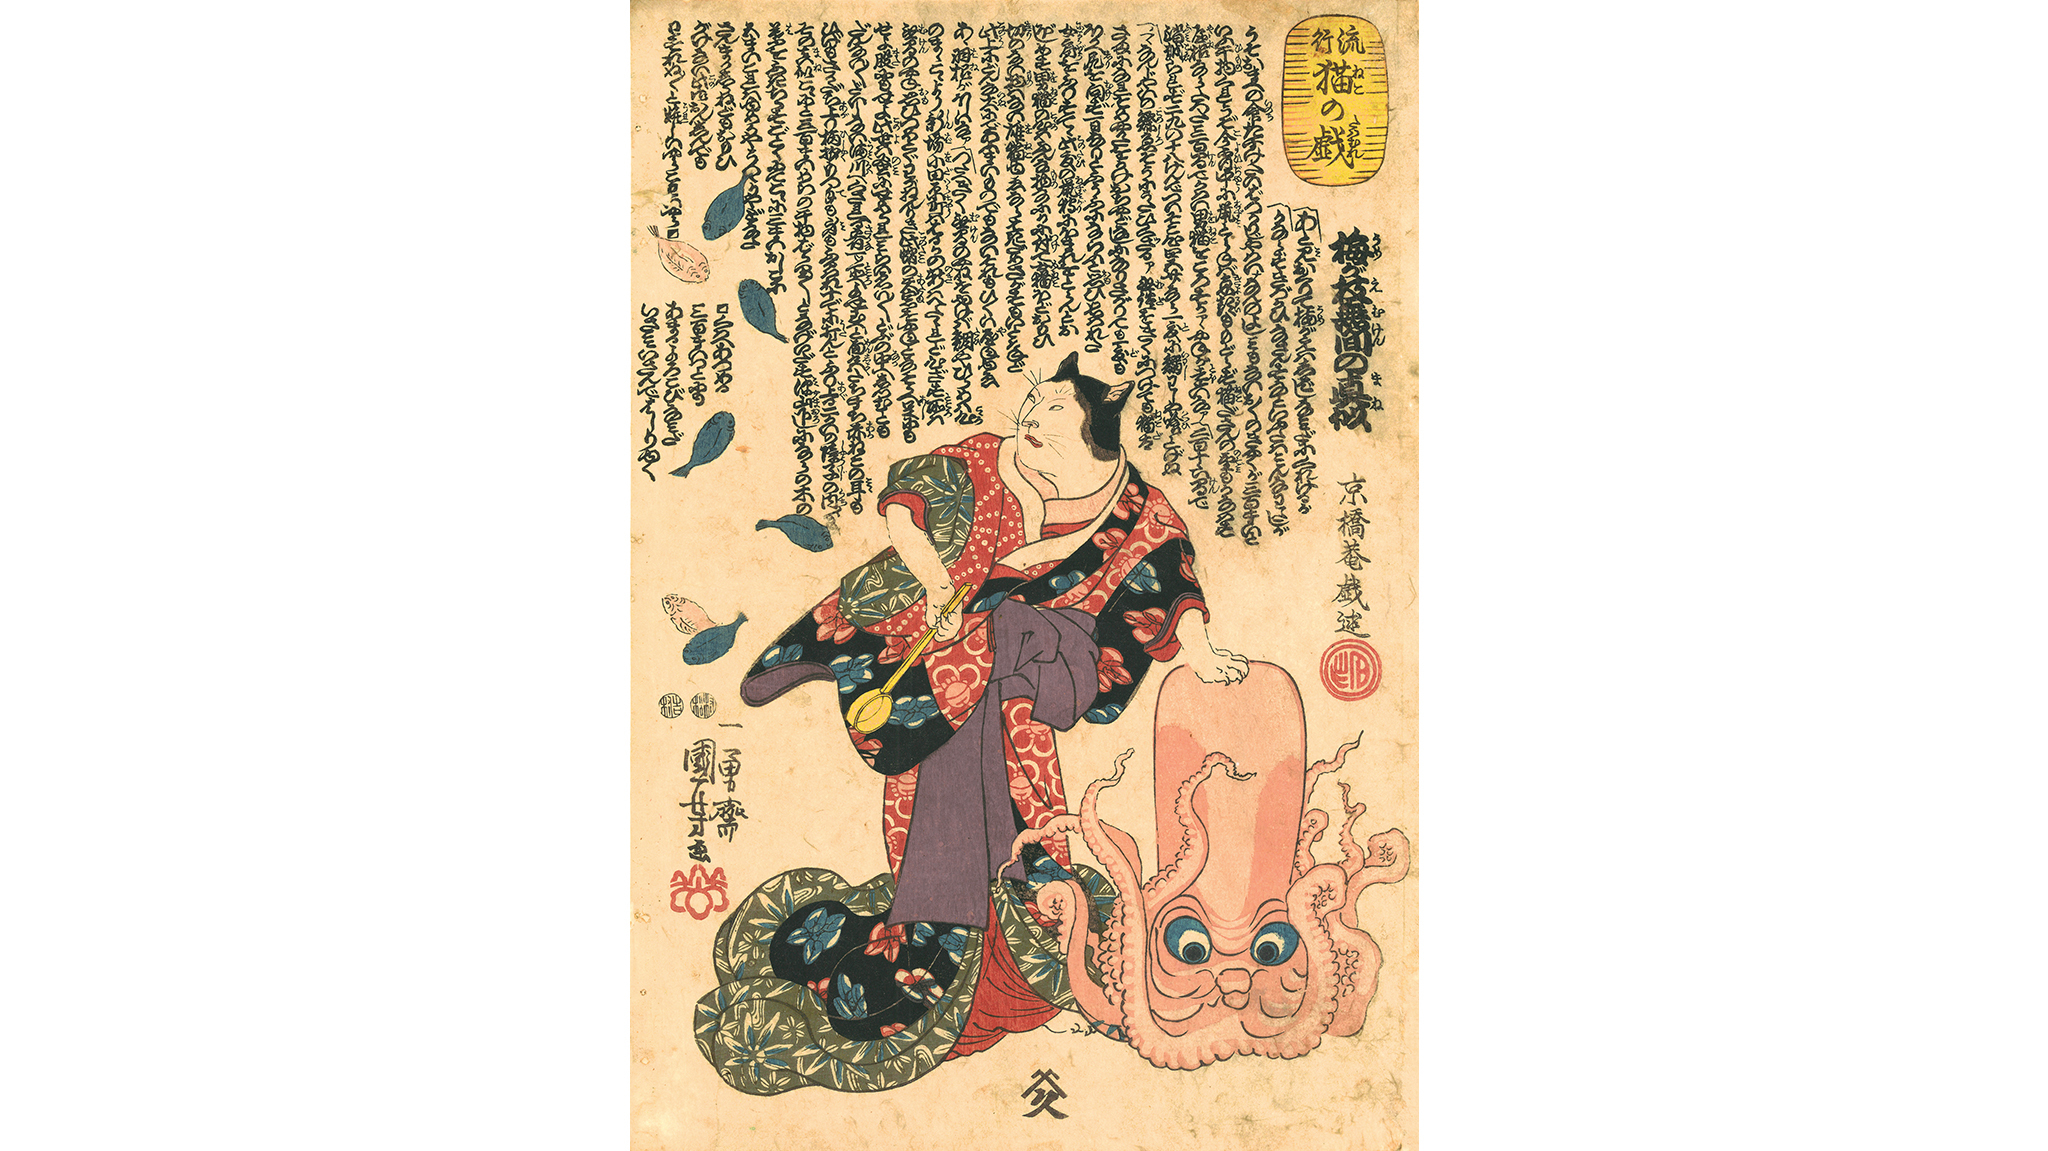 Utagawa Kuniyoshi (1797–1861), Parody of Umegae Striking the Bell of Limitless [Hell] from the series Fashionable Cat Games, 1848–54. Color woodblock print; 22 ½ x 16 inches.